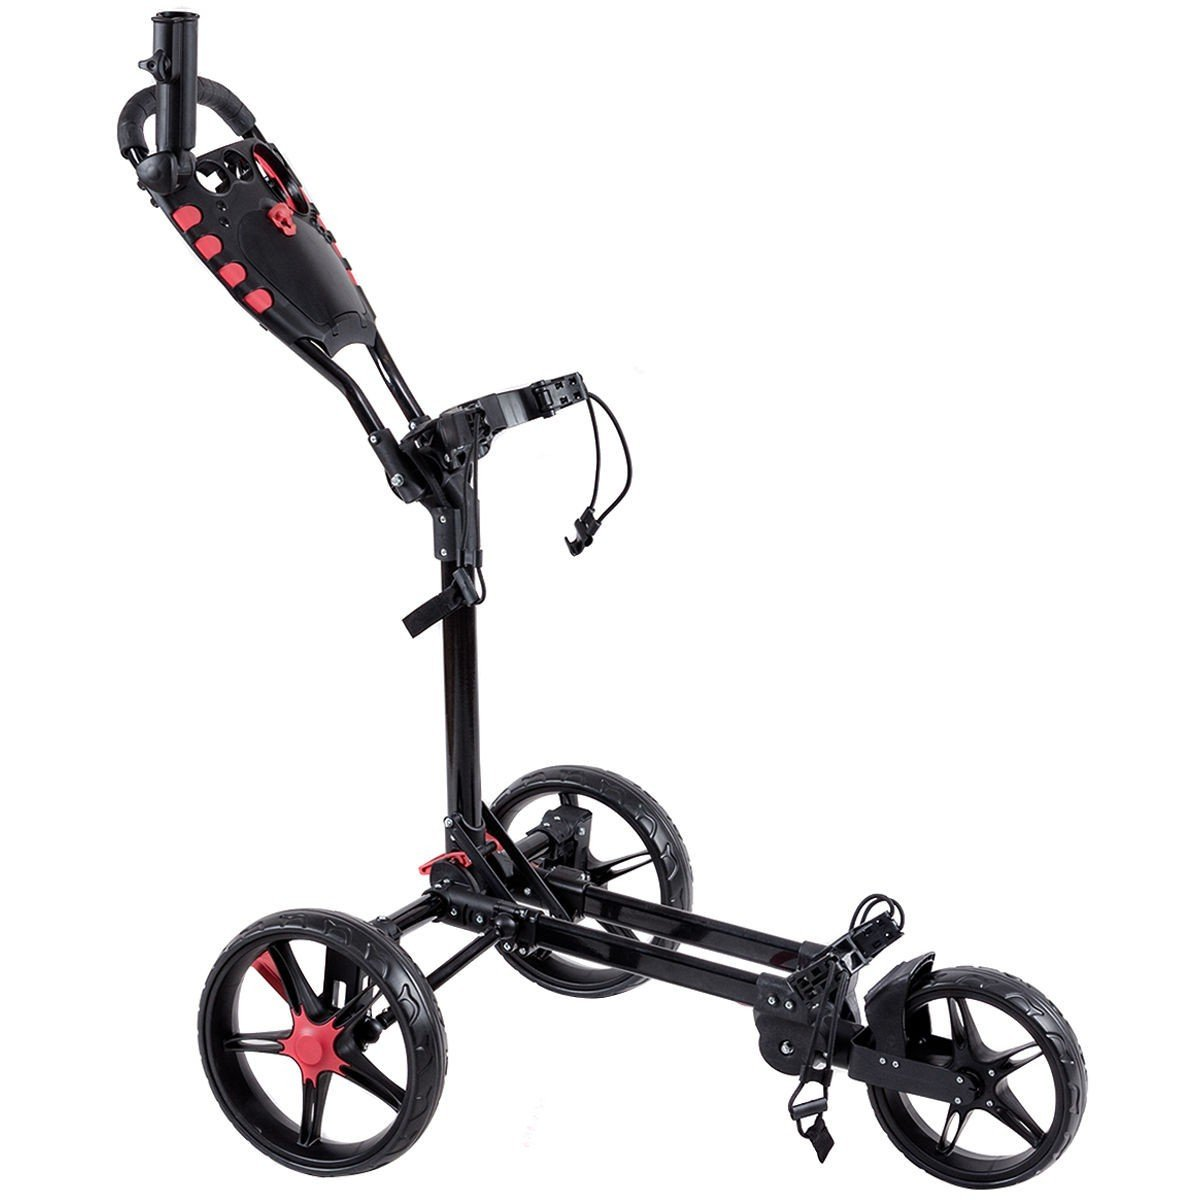 Exquisite Folding Golf Cart with Adjustable Push Handle by Apontus